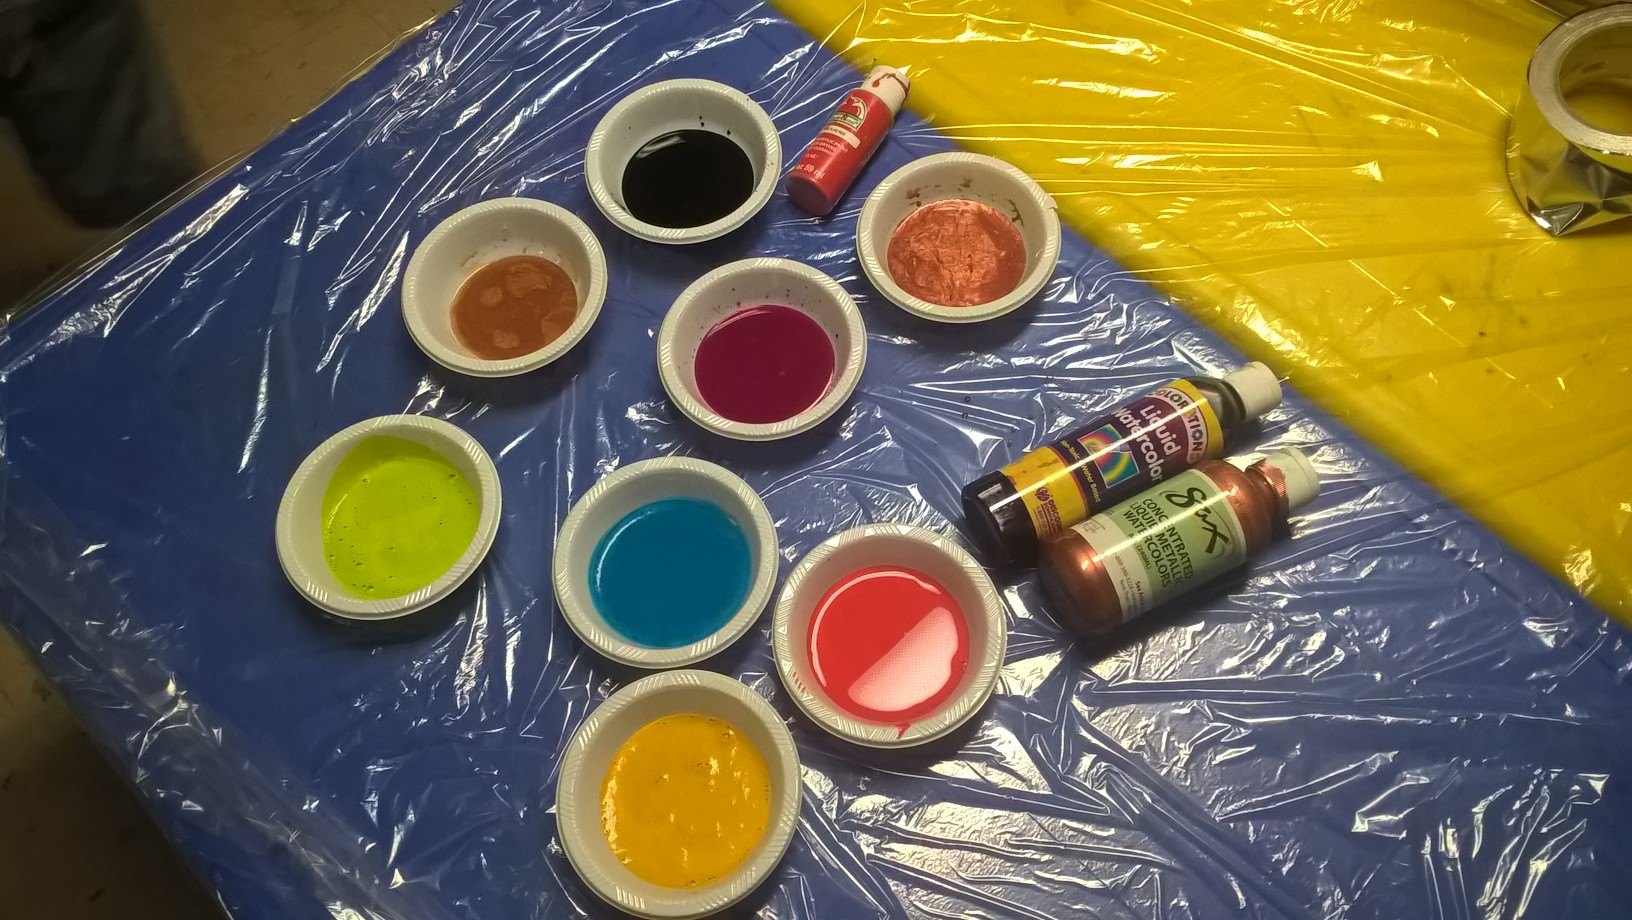 watercolors and acrylic paints in bowls